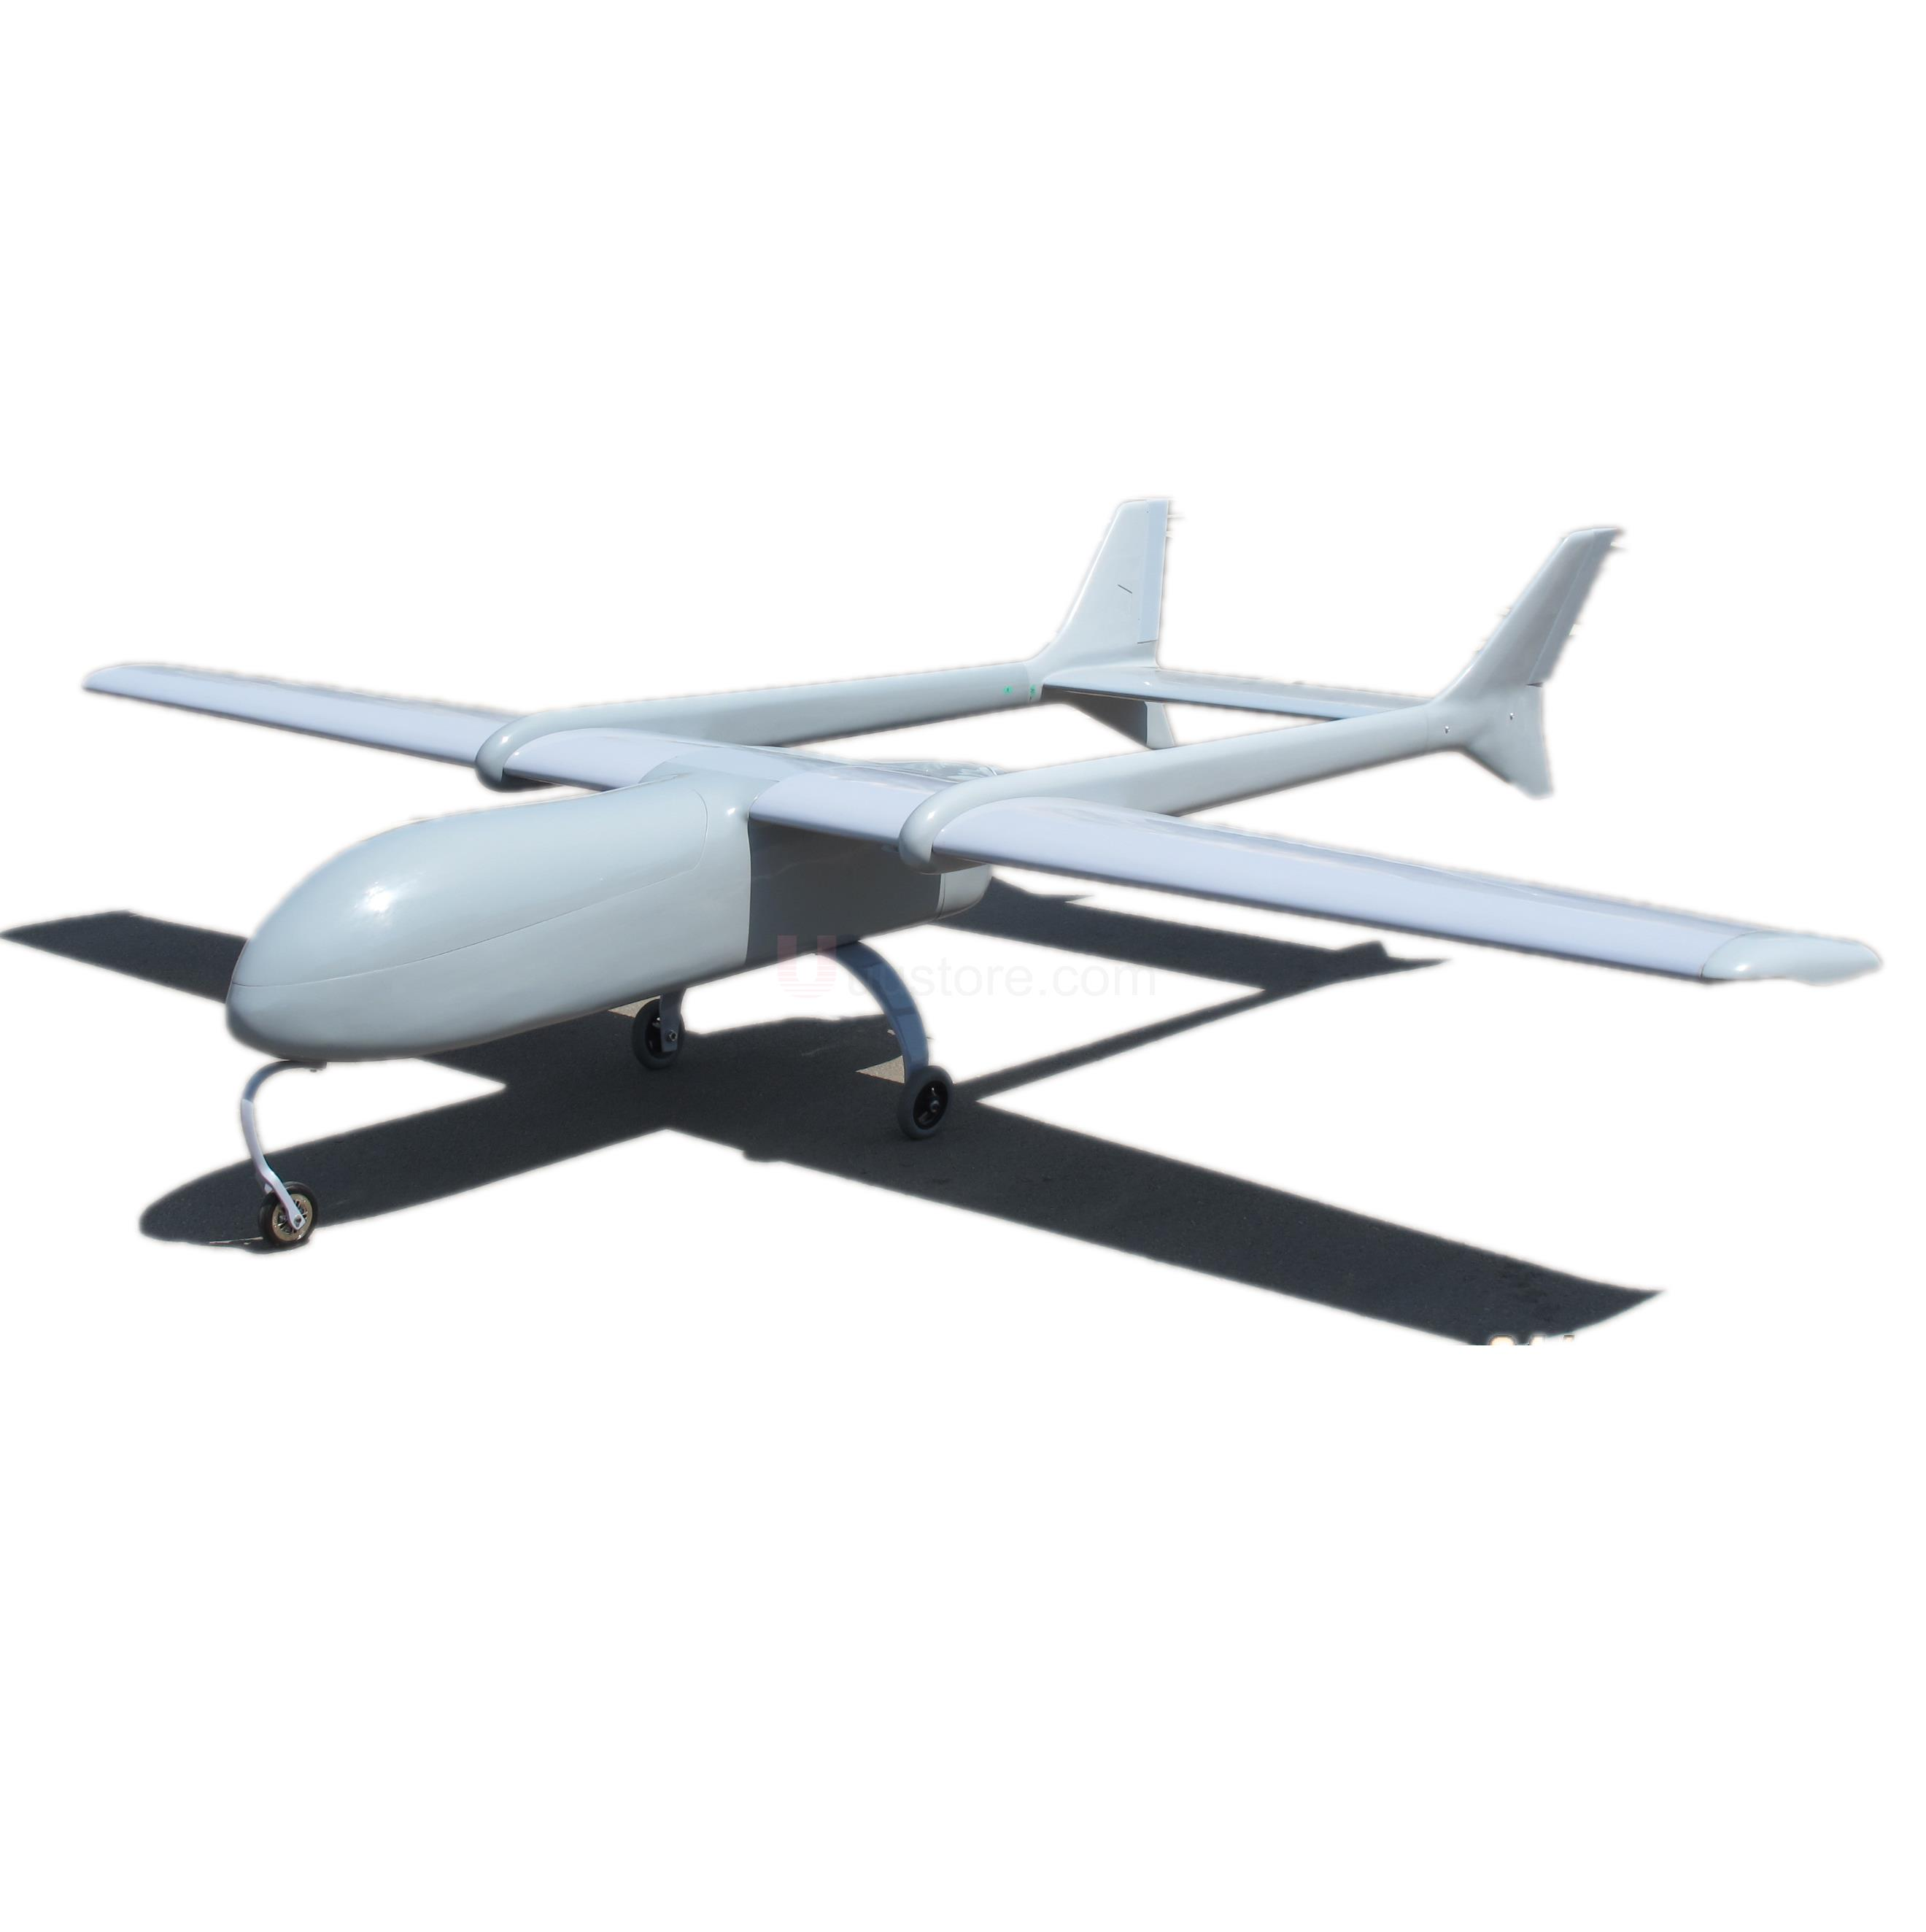 Super Huge Skyeye 4450mm UAV (H)T-tail Plane Platform Aircraft FPV Radio Remote Control H T Tail RC Model Airplane image